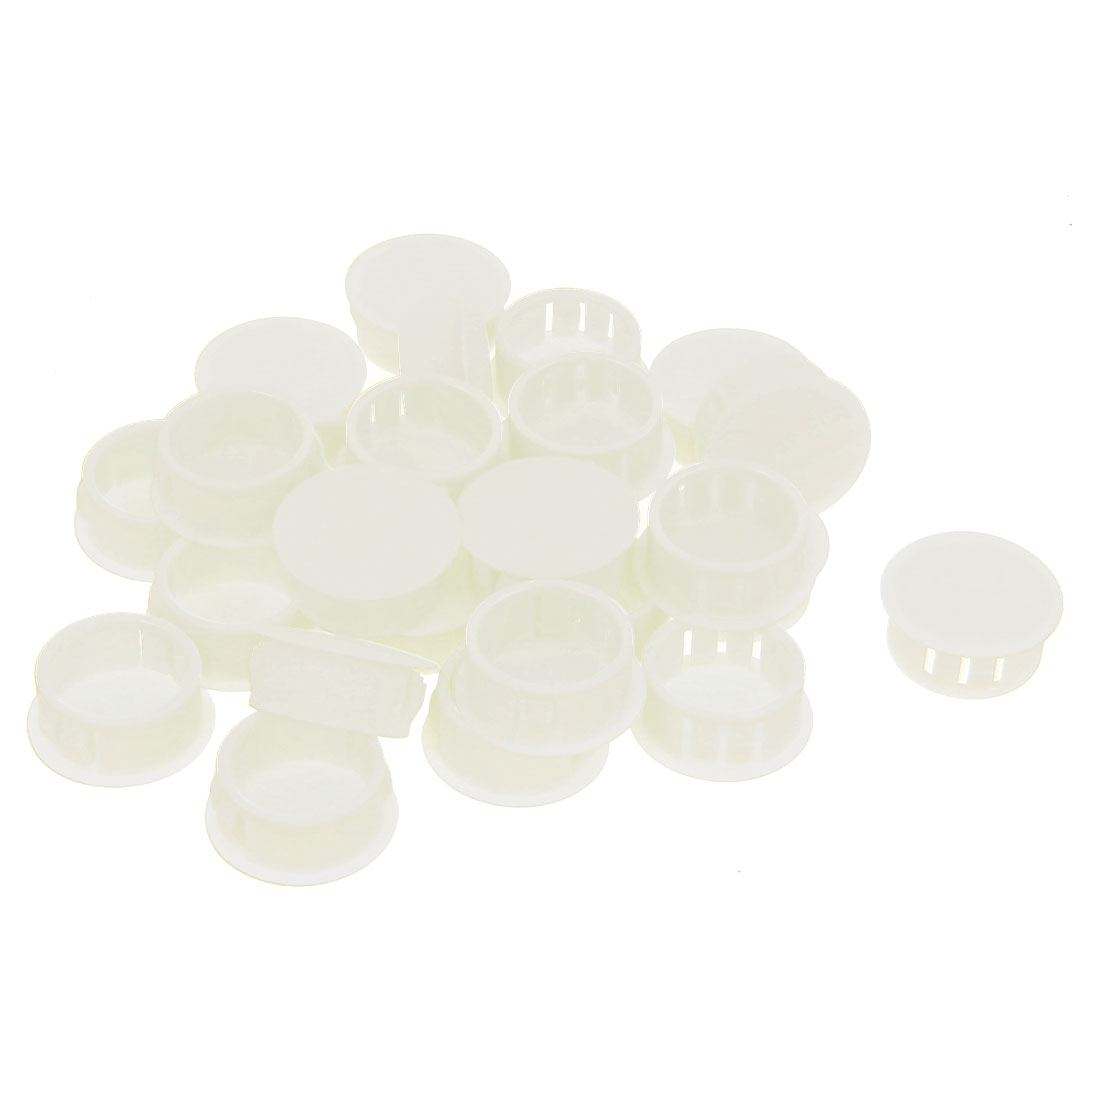 26 Pcs SKT-22 22mm Insulated White Plastic Snap in Mount Domed Blank Lock Hole Connectors Cover Harness Fastener